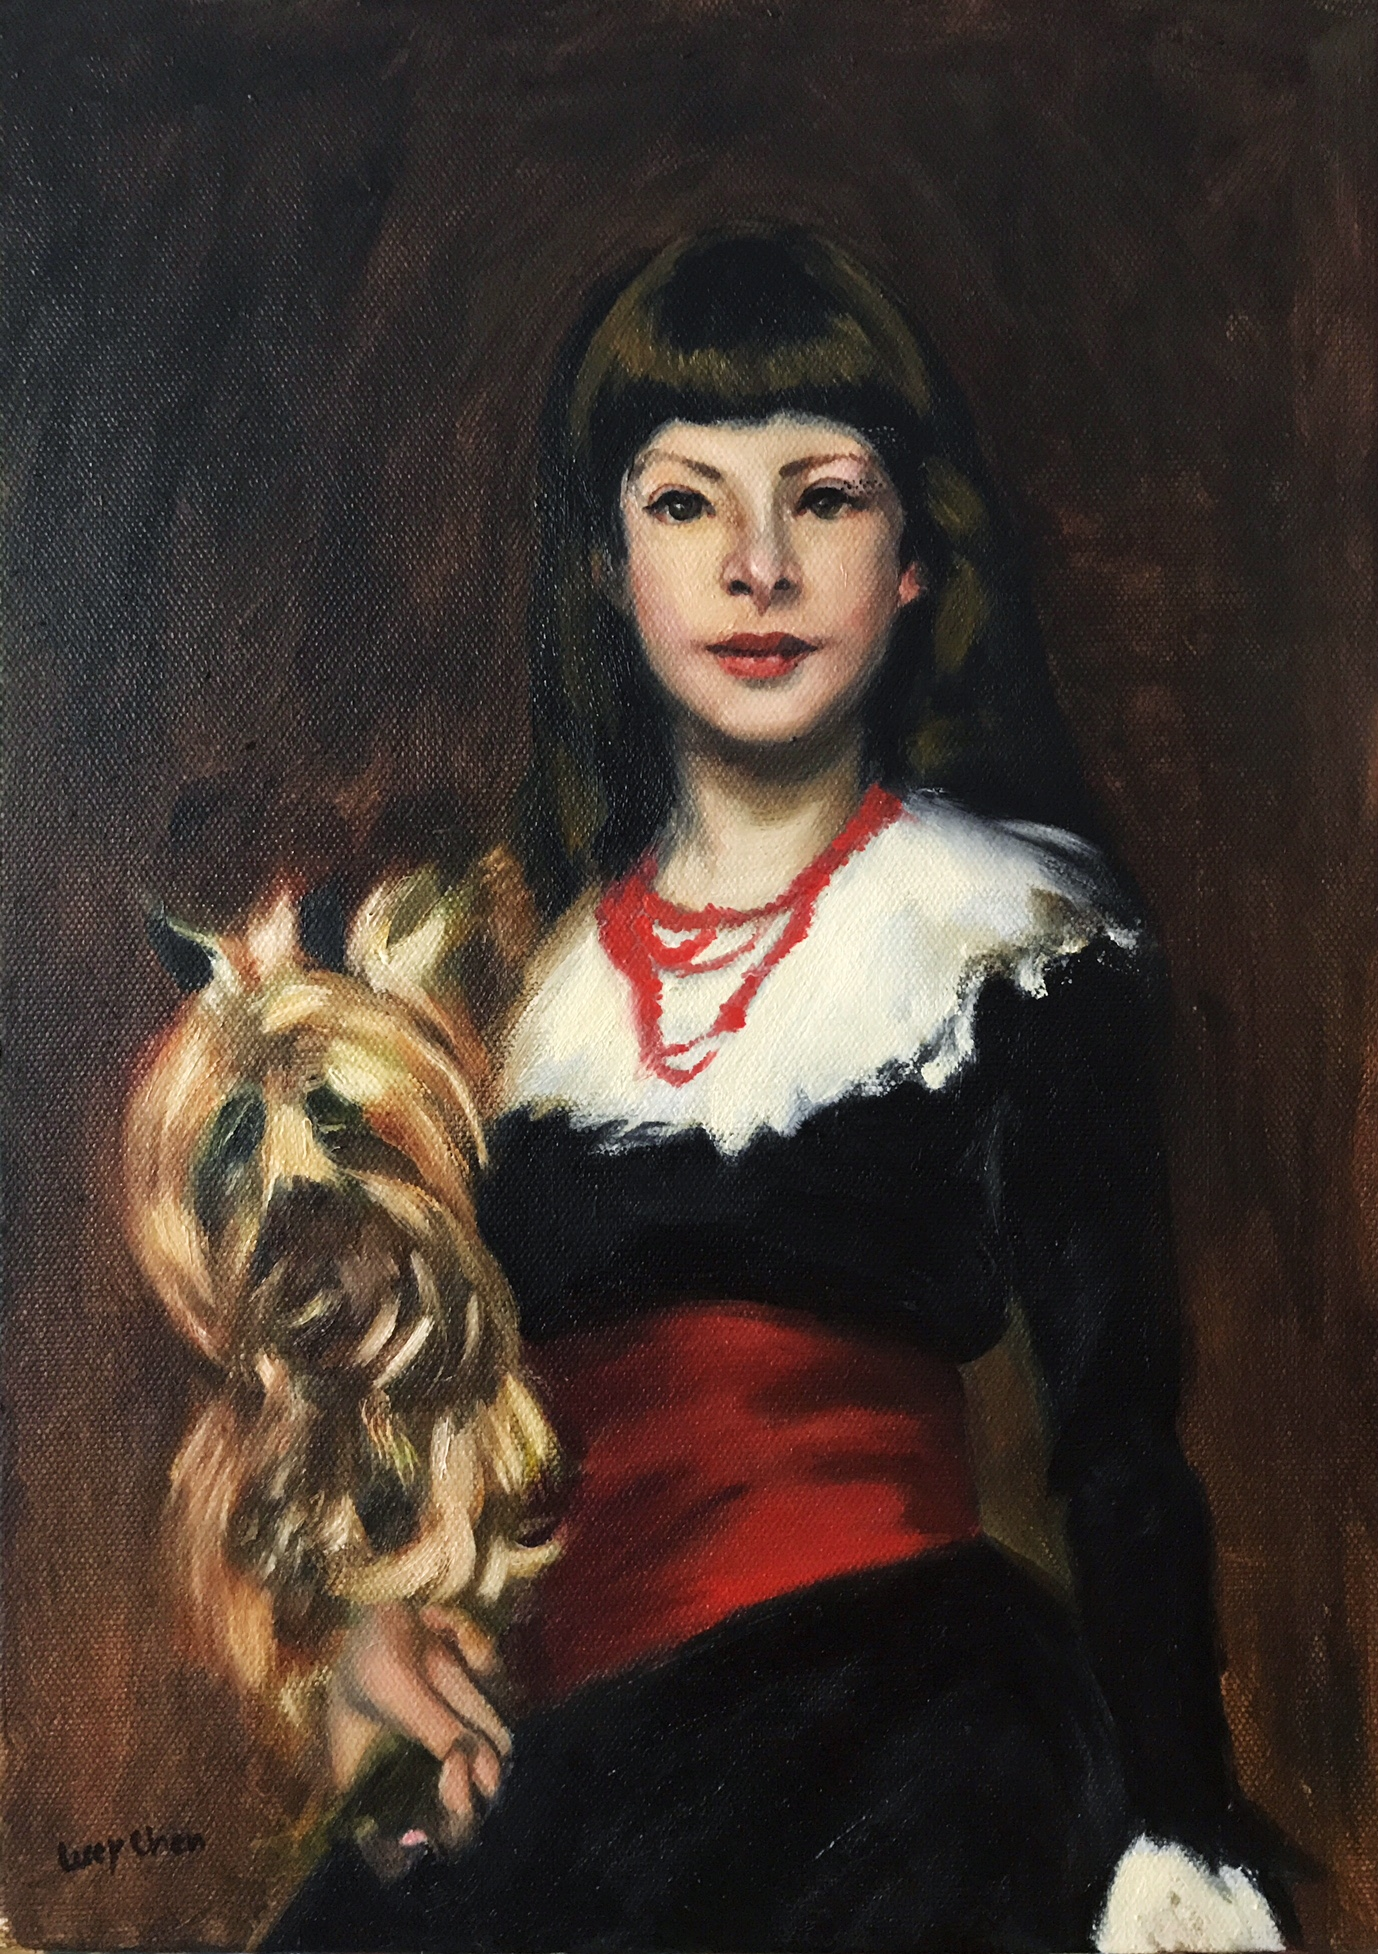 """SARGENT'S BEATRICE (Study of a Sargent painting), oil on stretched canvas, 14""""x10"""". SOLD"""